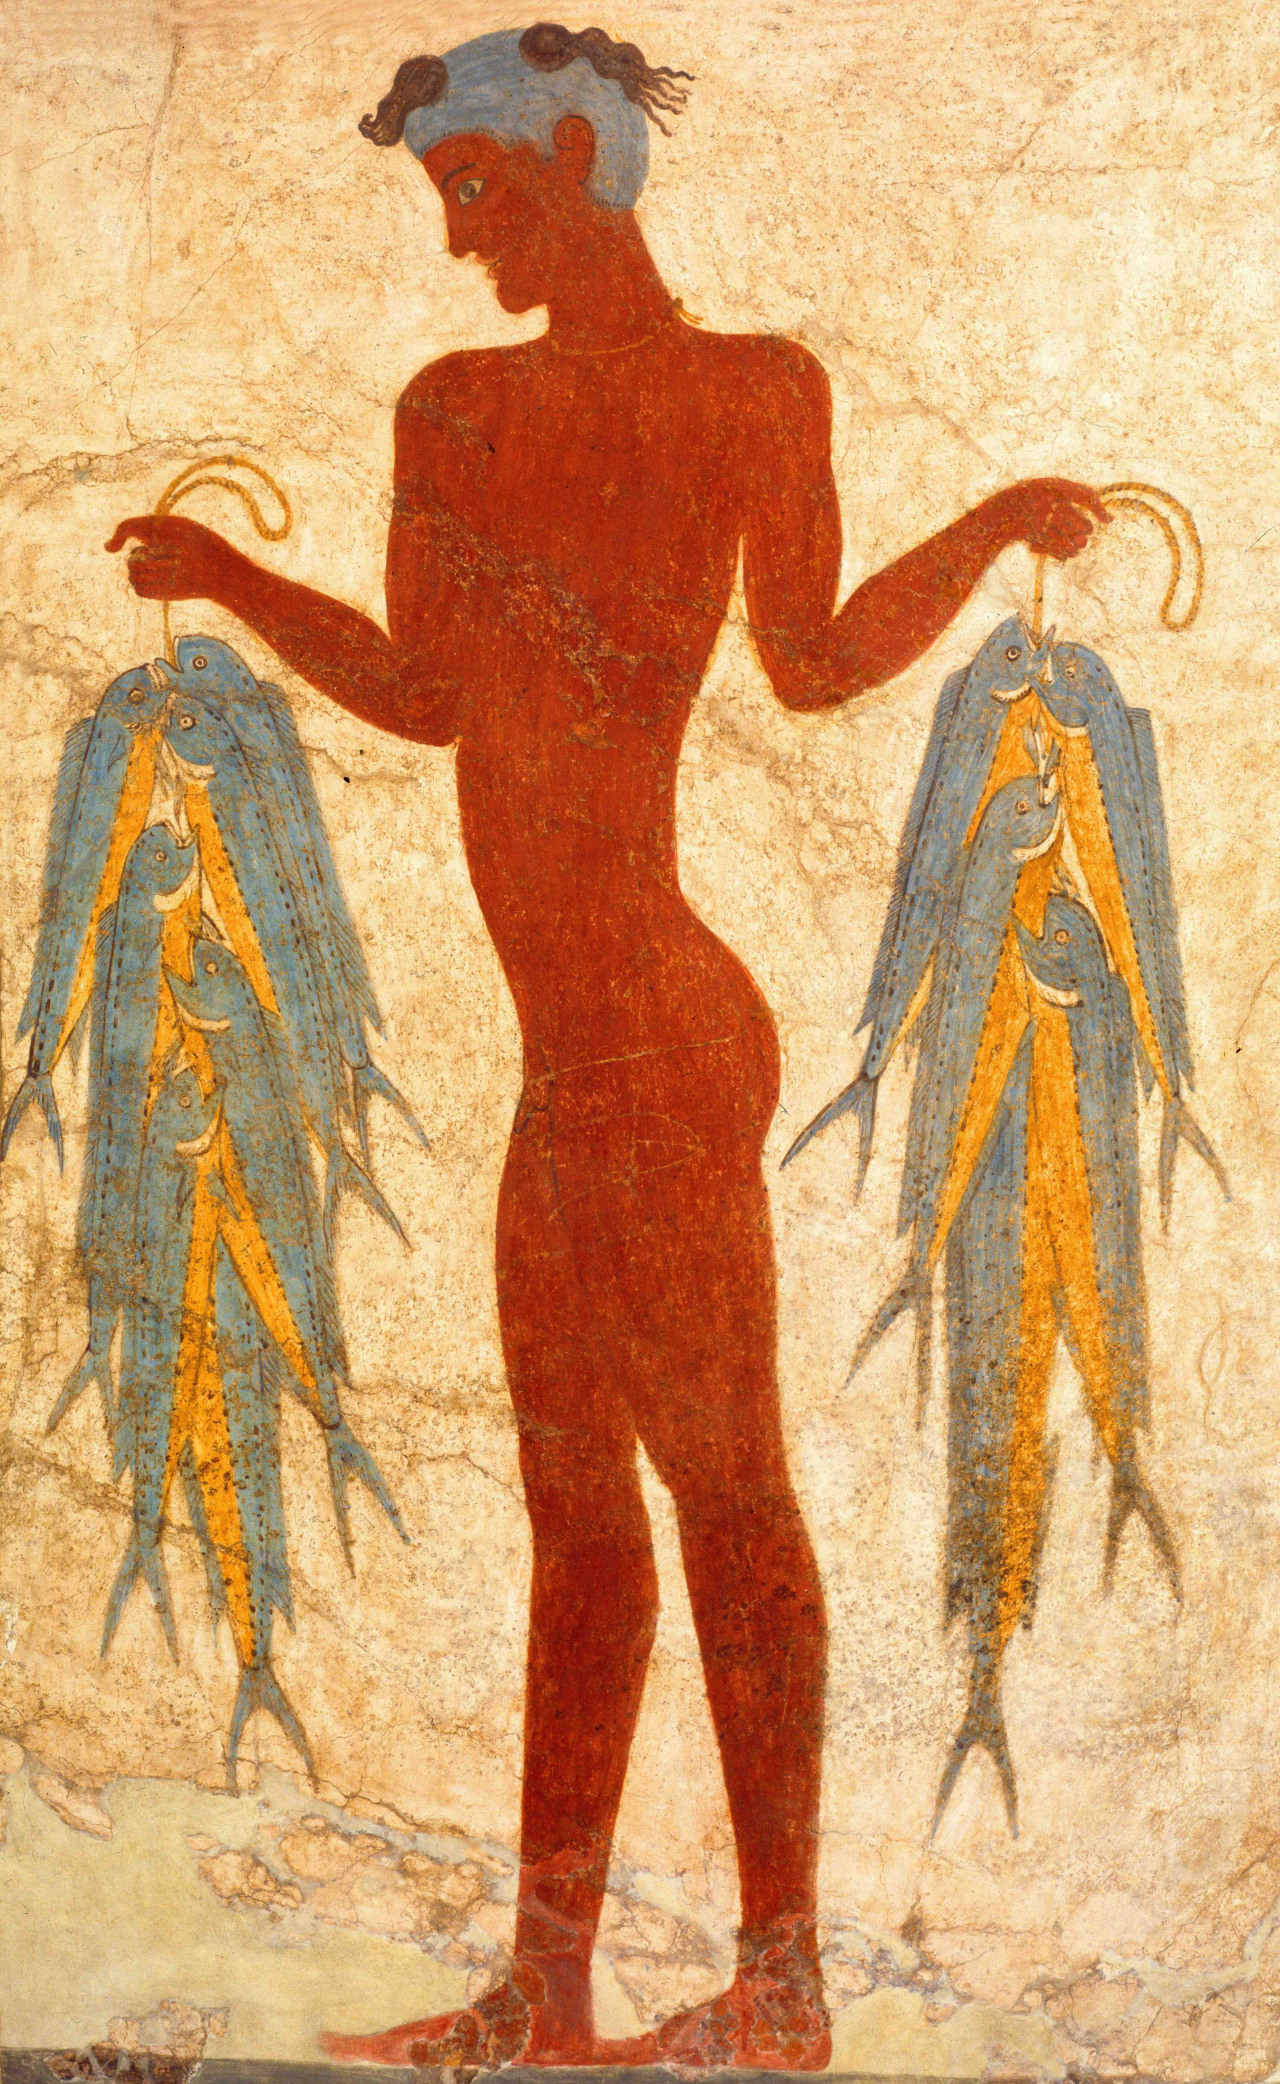 The fresco of a fisherman found at the Minoan town Akrotiri, from the collection of the Museum of Prehistoric Thera (Ministry of Culture and Sports of Greece)